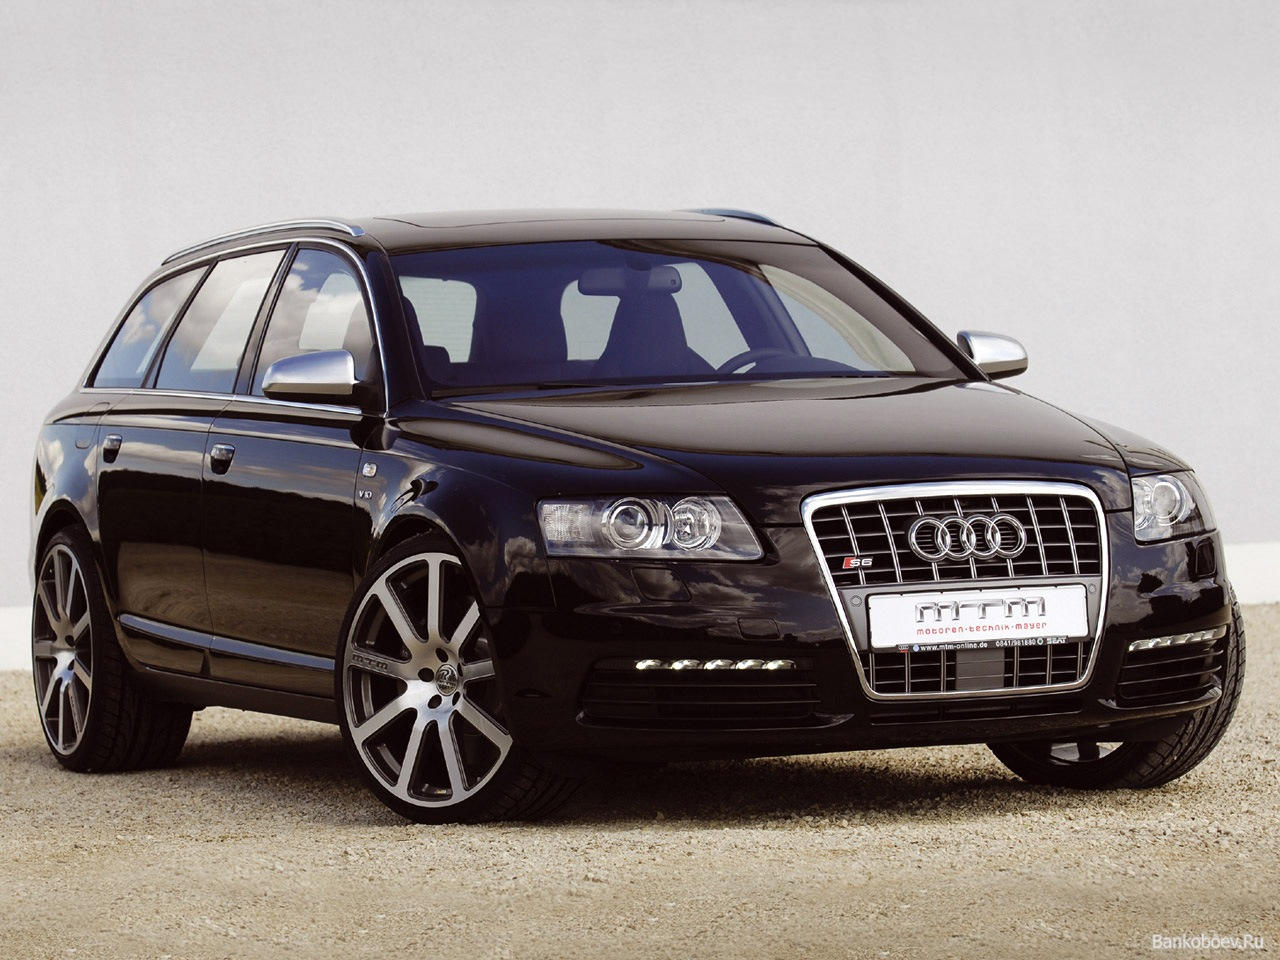 audi s6 avant 4f c6 5 2 i v10 fsi quattro 435 ps auto. Black Bedroom Furniture Sets. Home Design Ideas